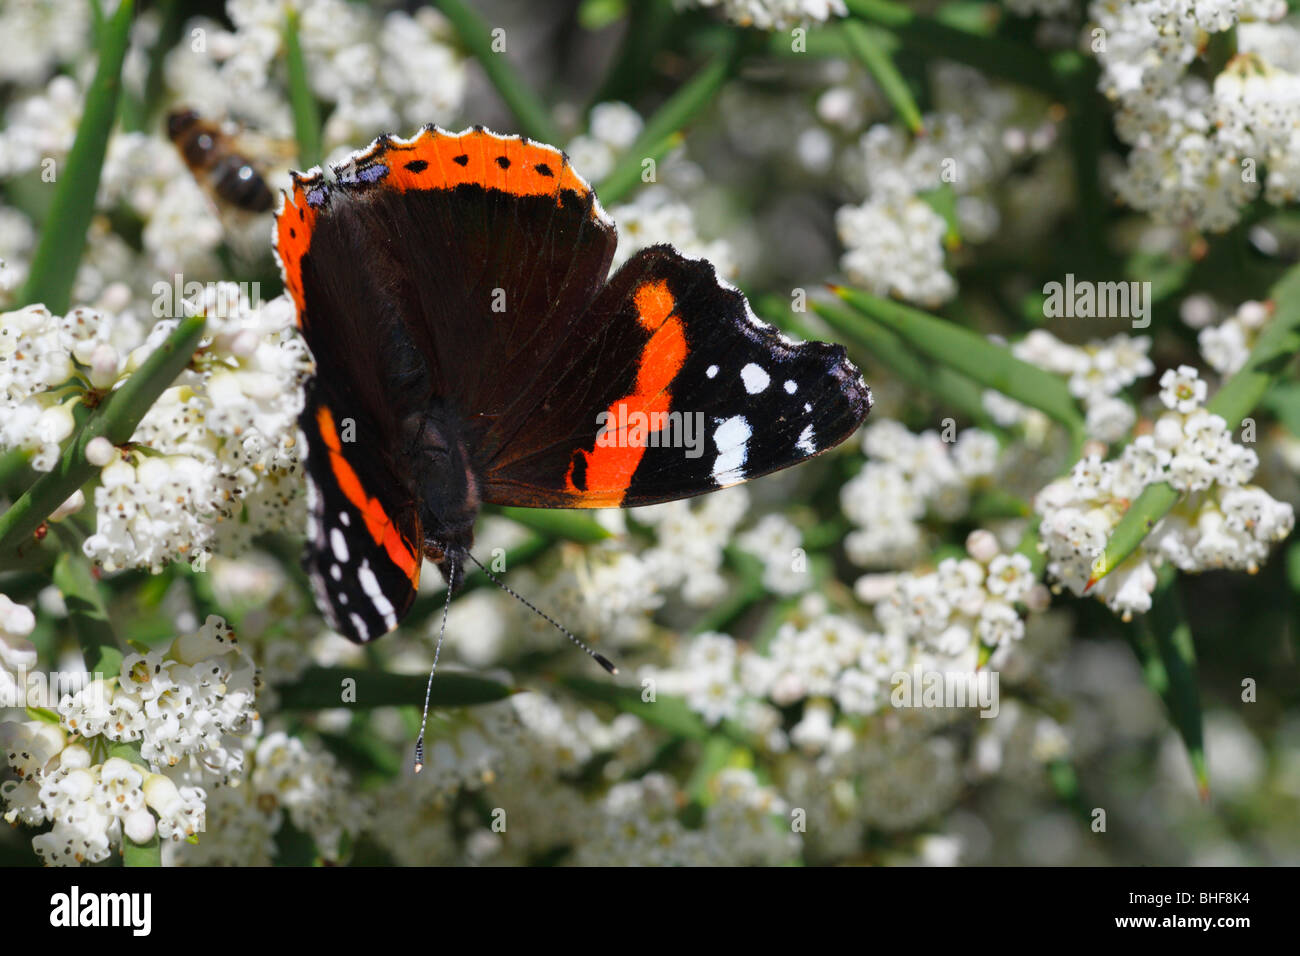 Red Admiral Butterfly (Vanessa atalanta) feeding on the spiny shrub Colletia spinosissima in a garden. Powys, Wales. Stock Photo